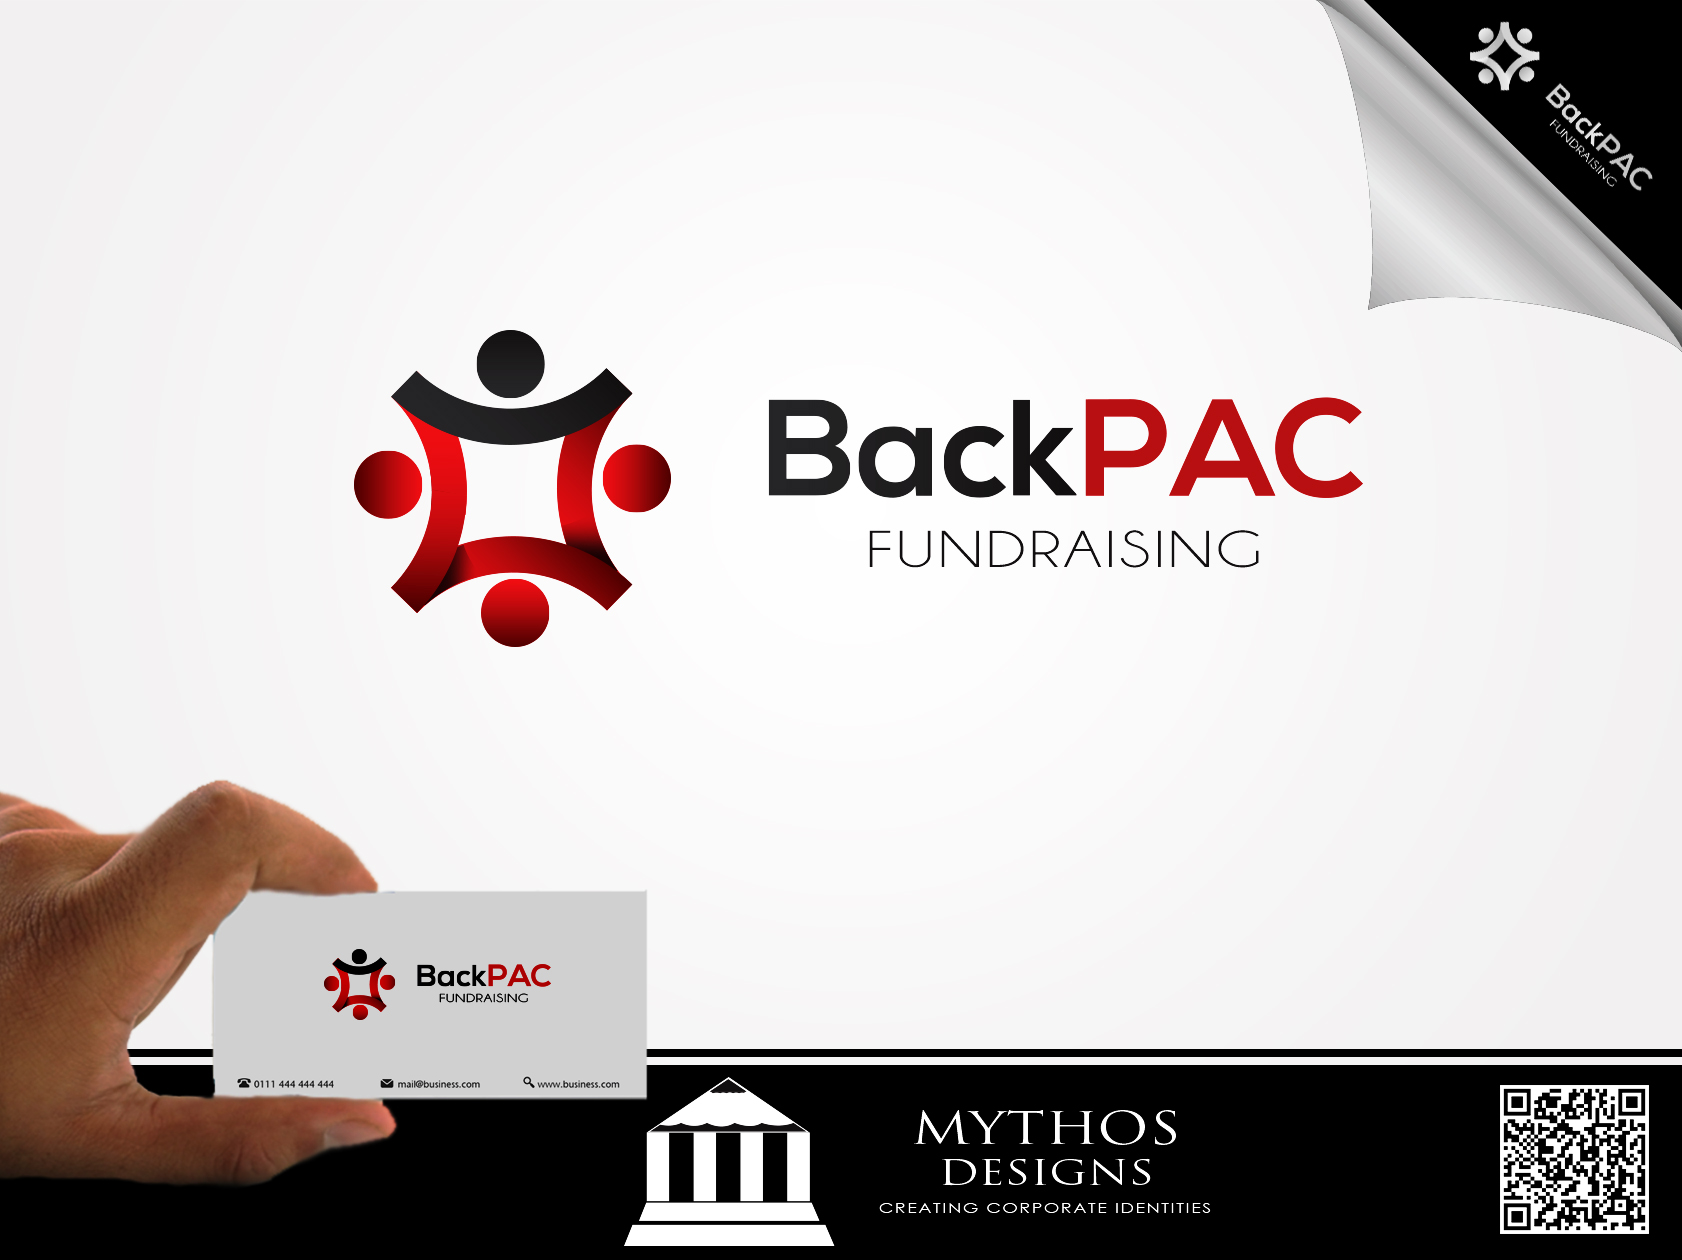 Logo Design by Mythos Designs - Entry No. 50 in the Logo Design Contest Imaginative Logo Design for BackPAC Fundraising.